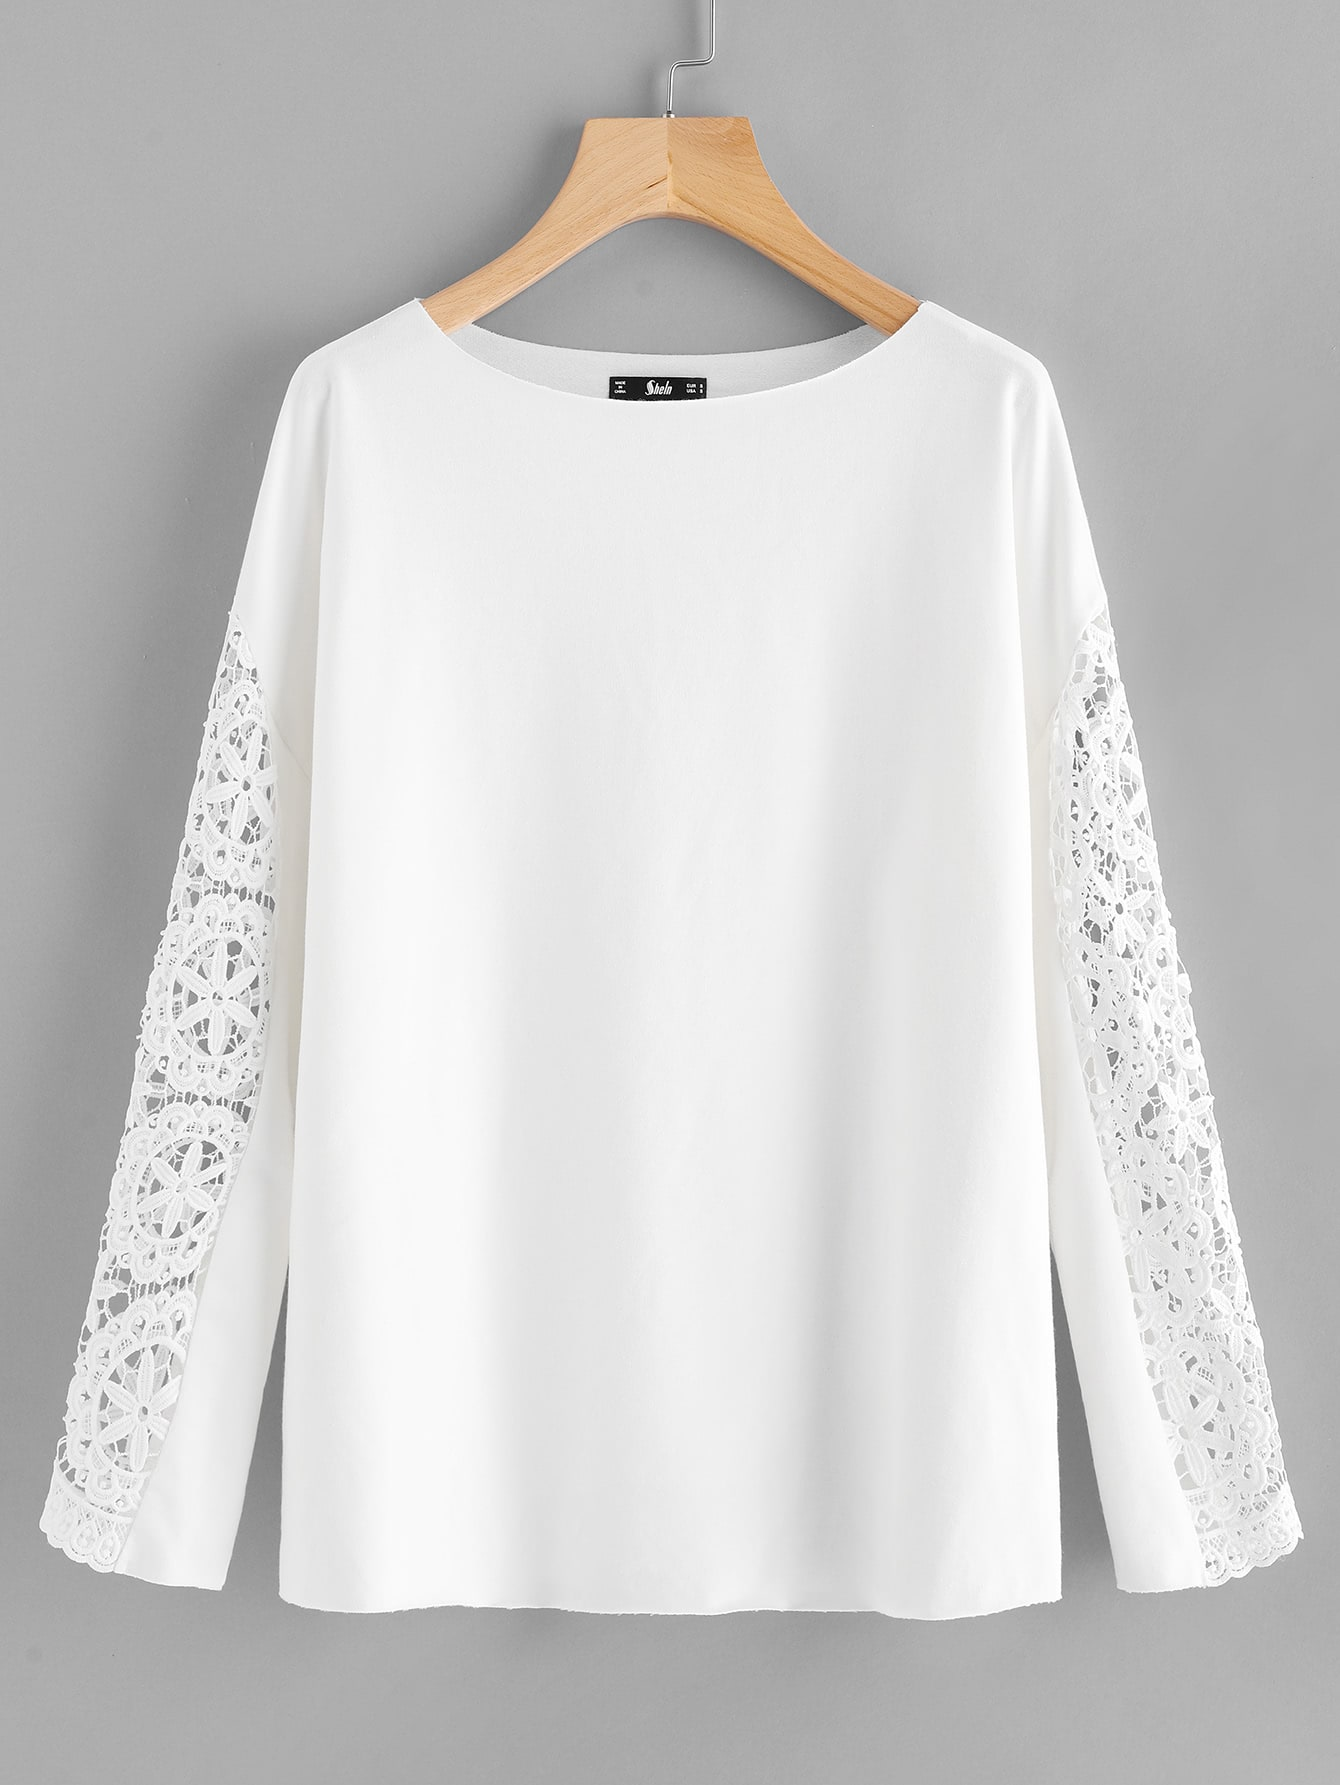 Circle Lace Insert Raw Hem Sweatshirt 911 7979 002